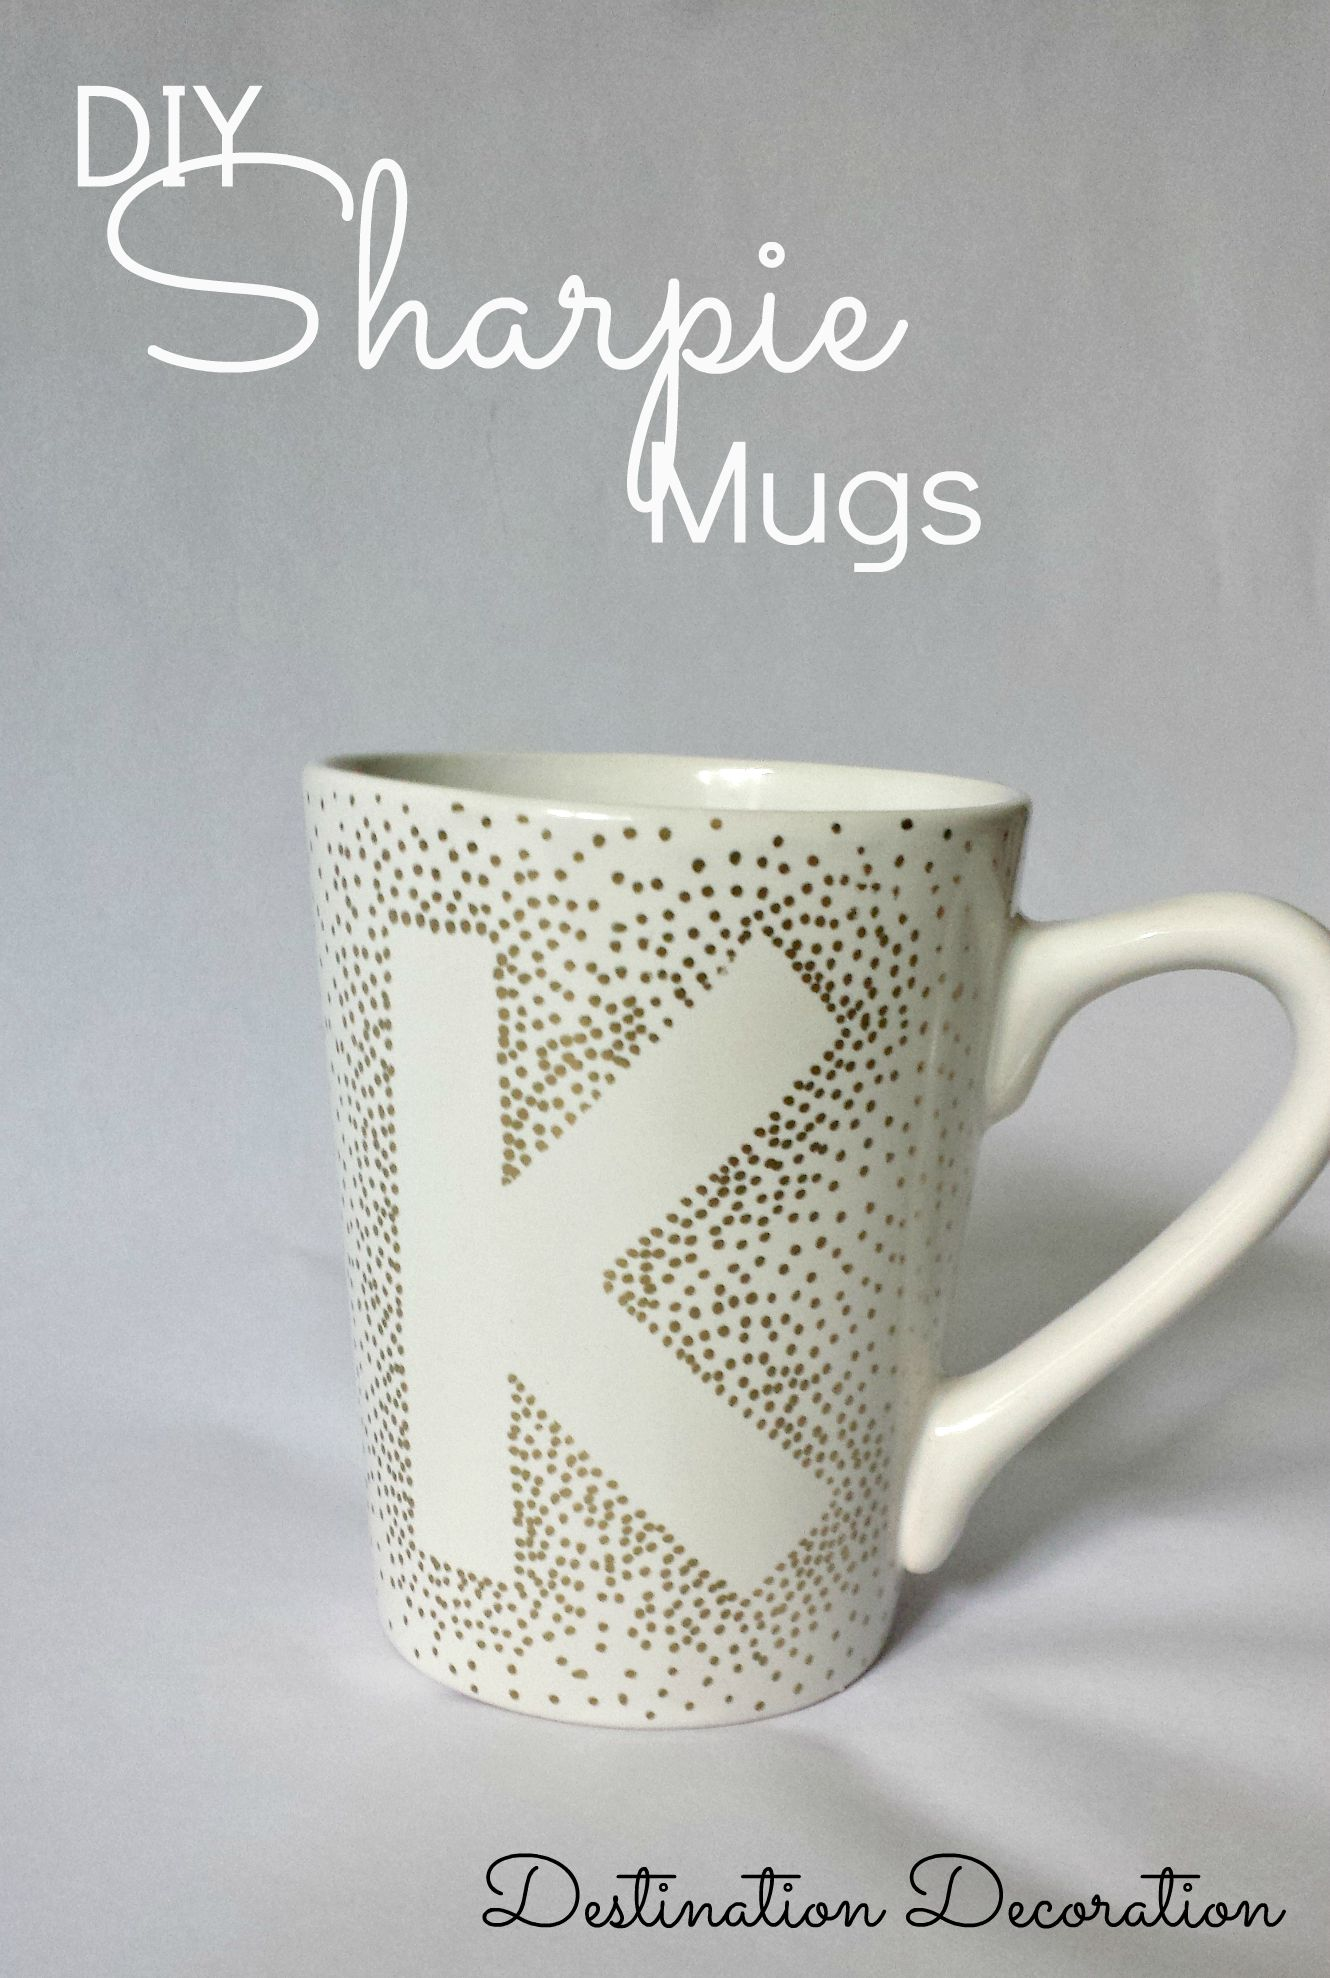 Diy Sharpie Mugs Using Dollar Tree Mugs